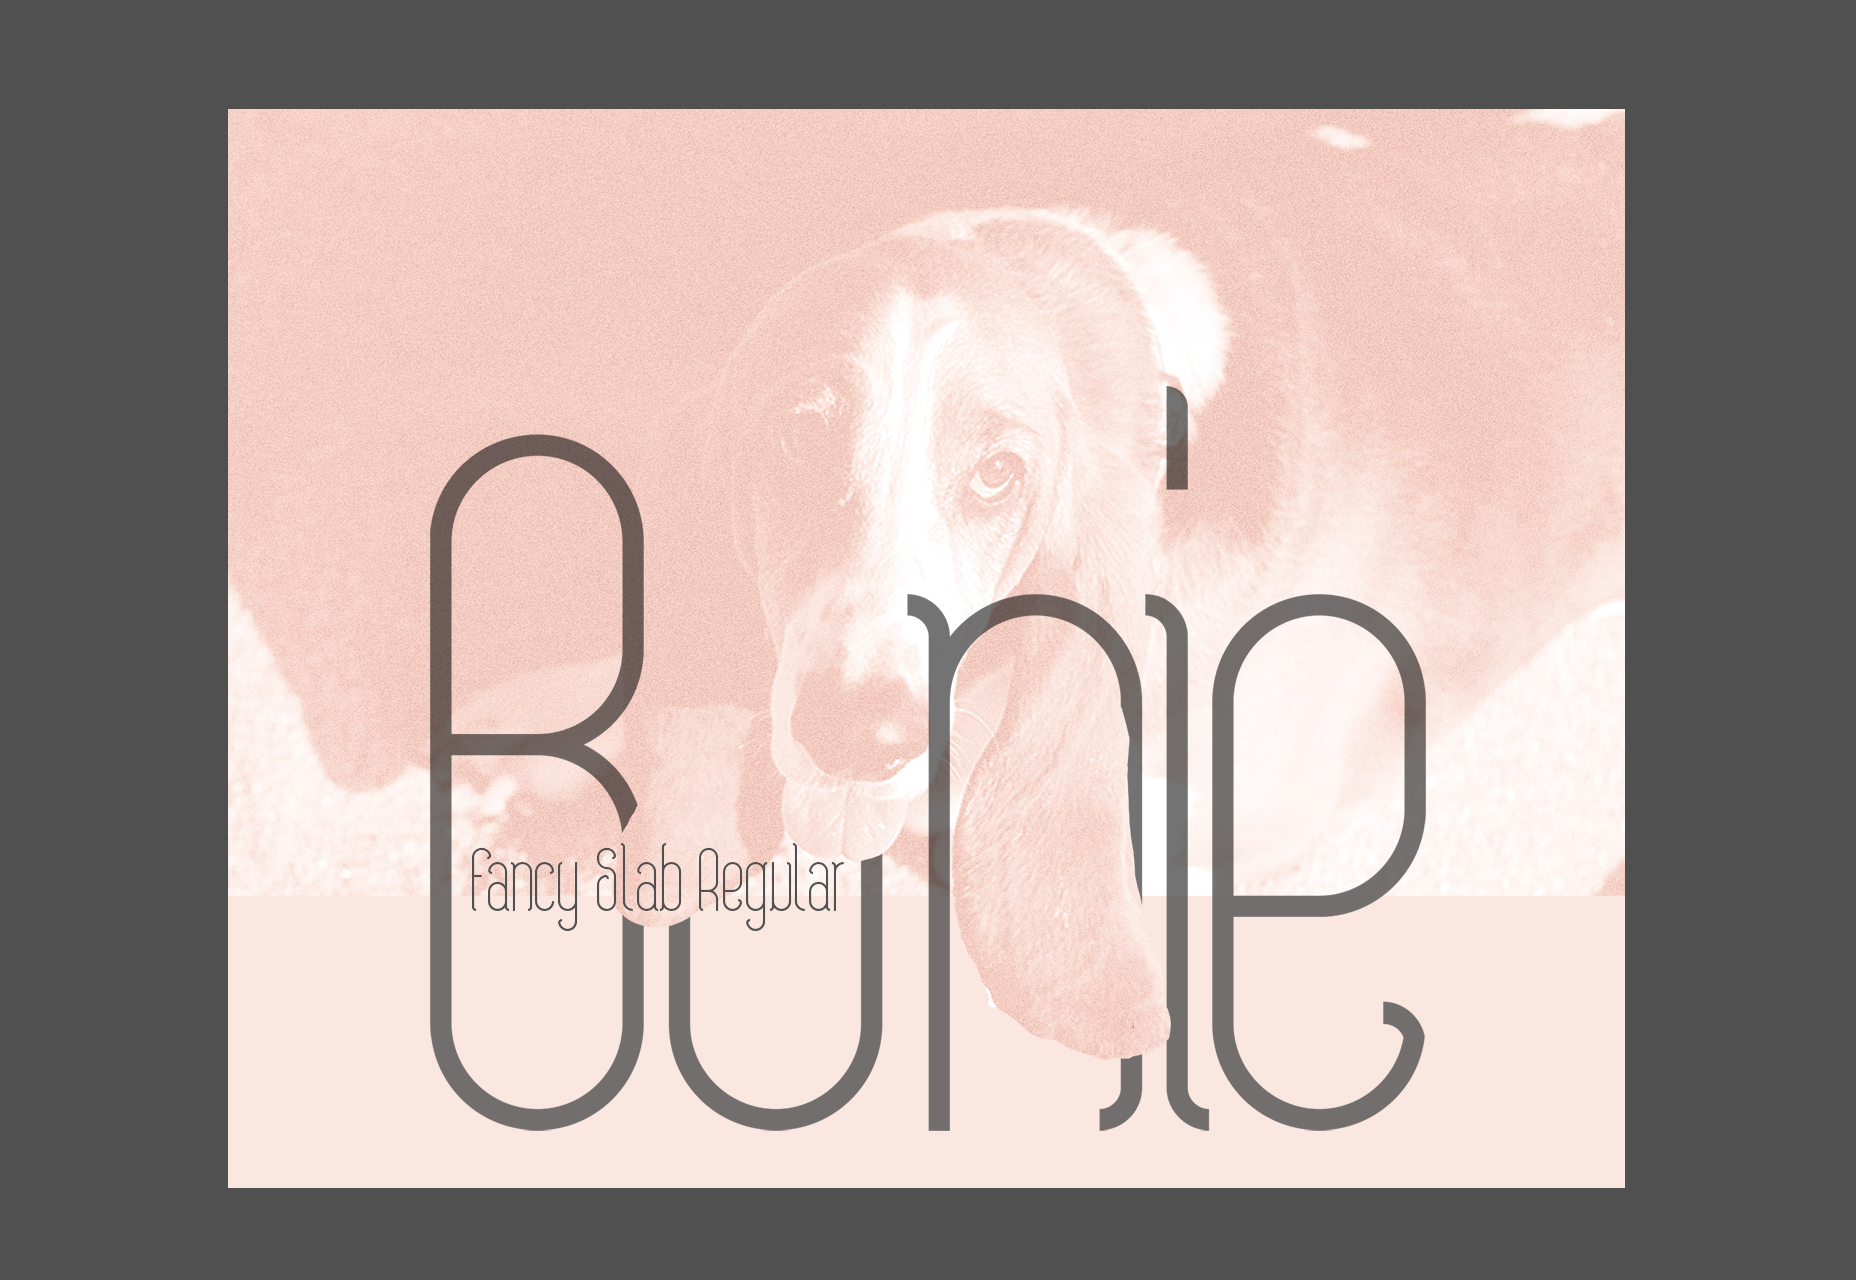 bonie-fancy-slab-regular-typeface